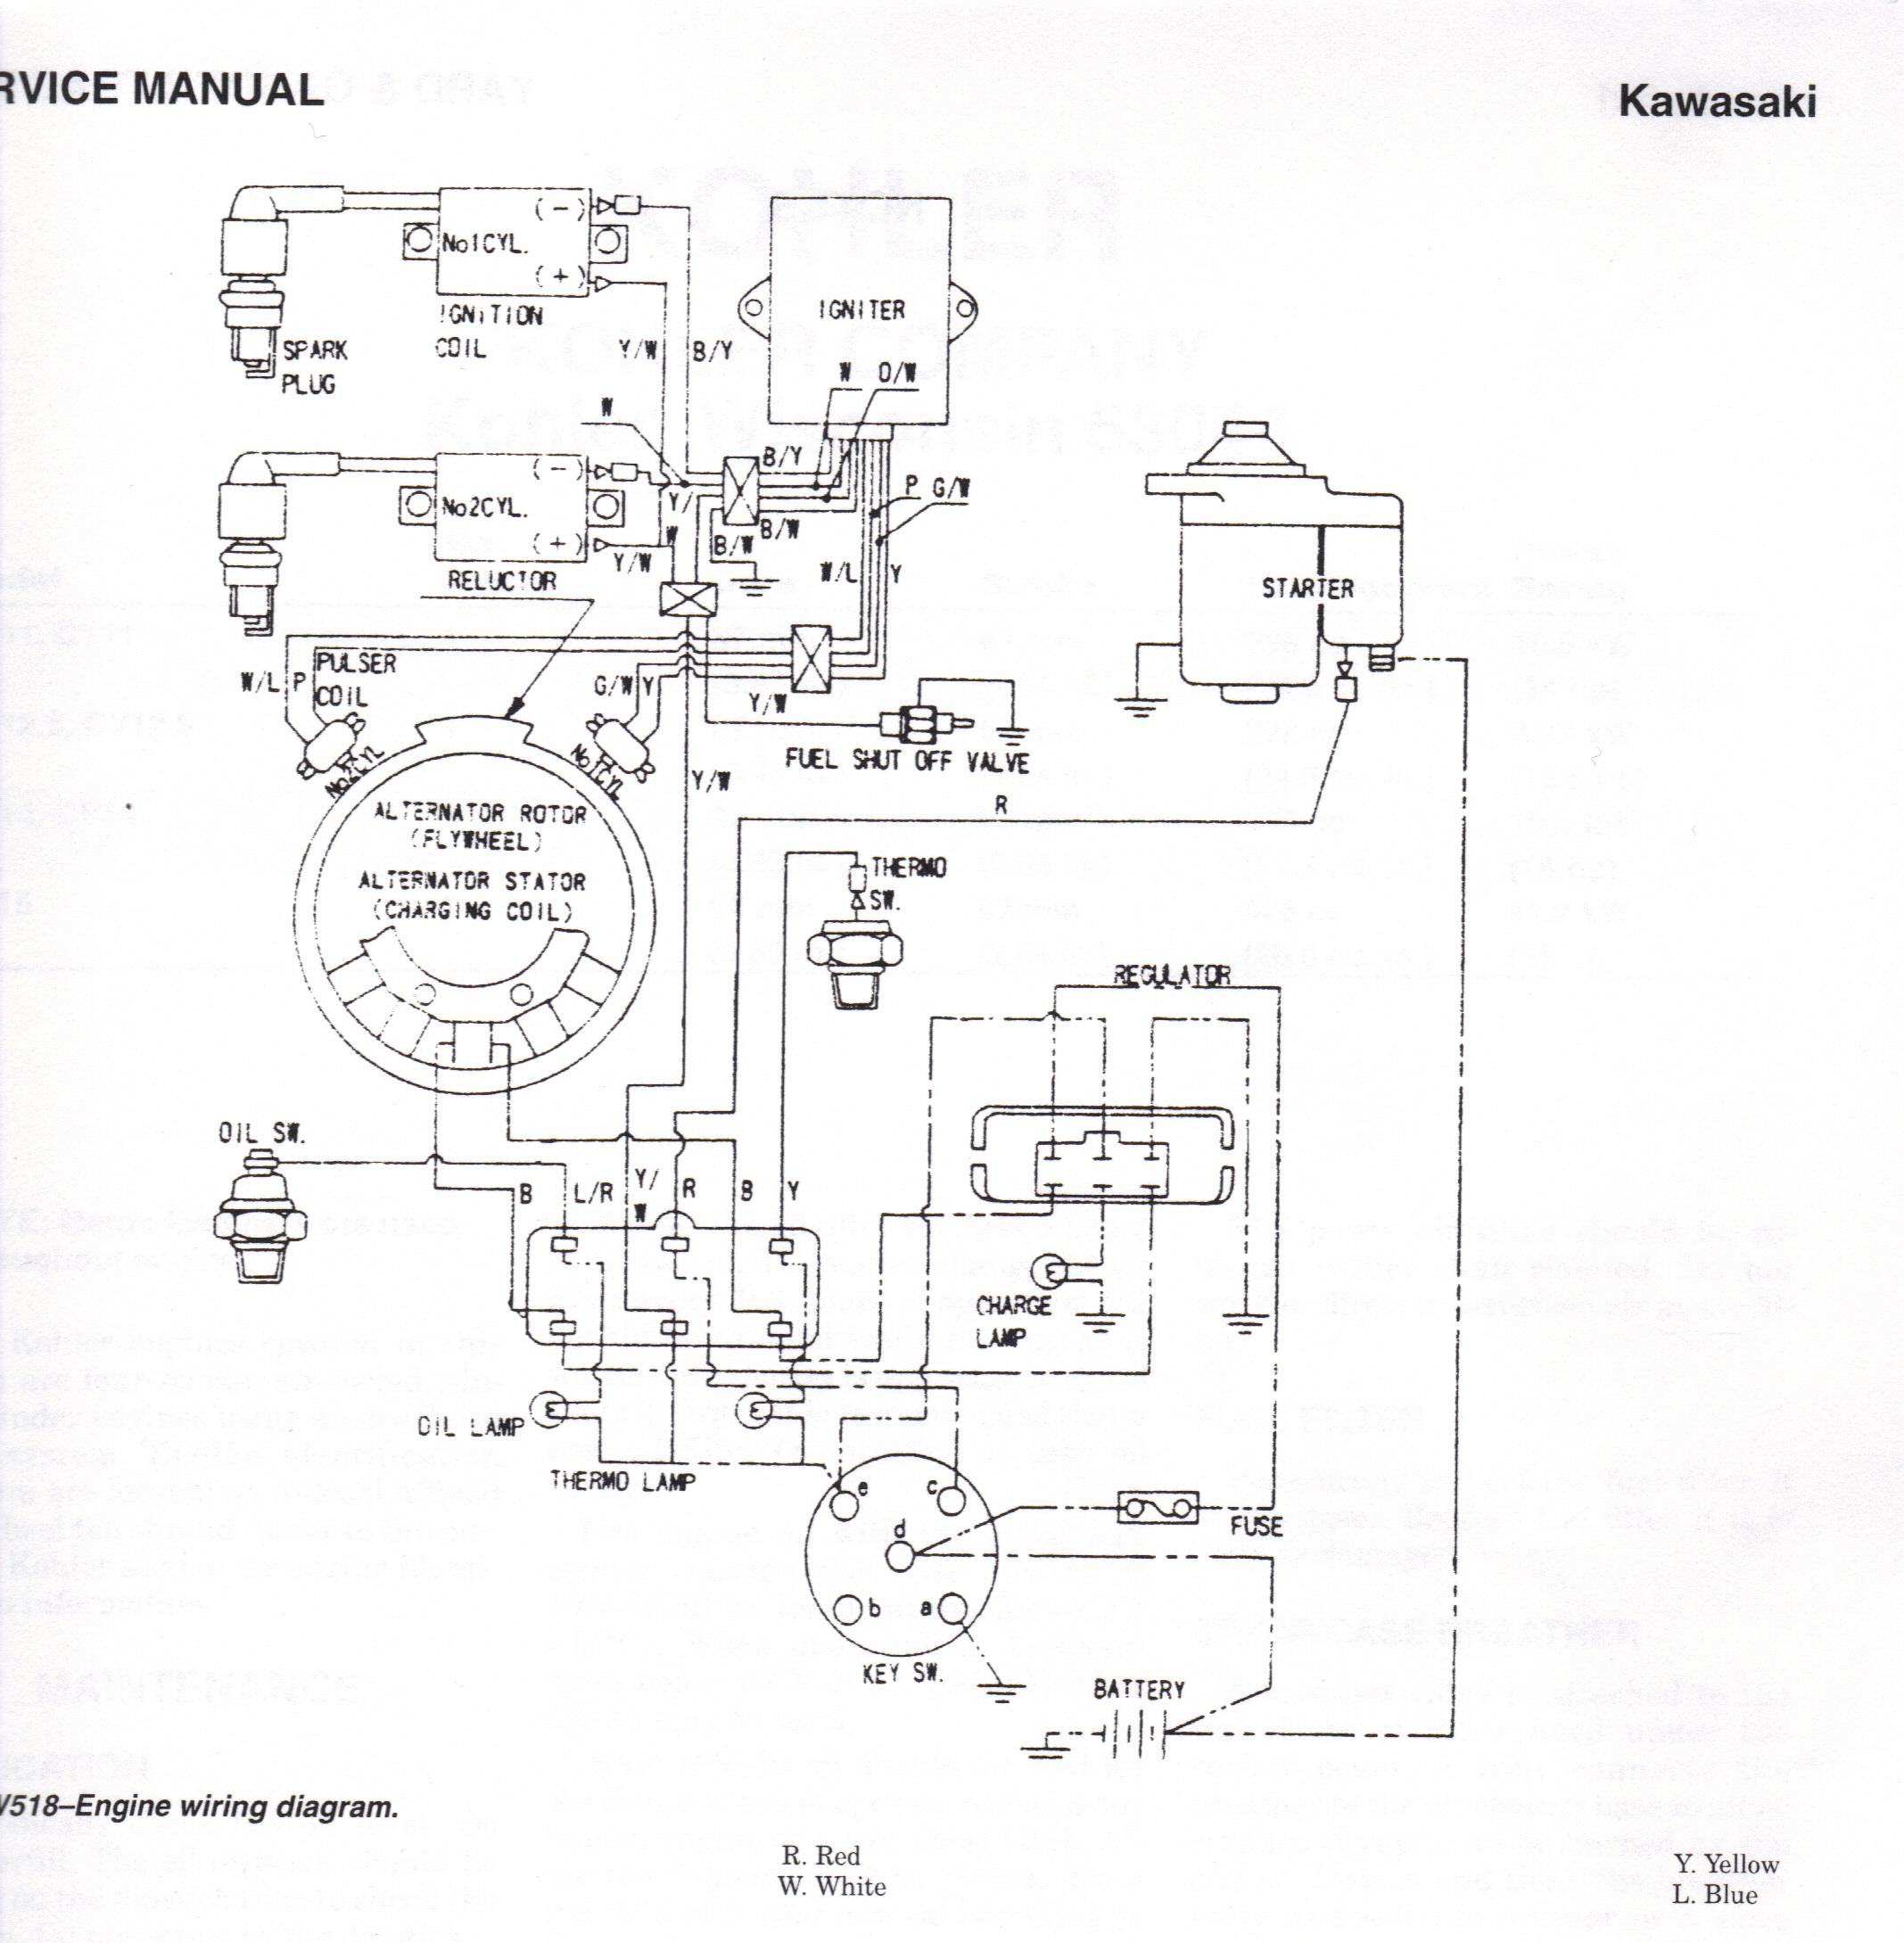 John Deere Key Switch Wiring Diagram Manual Of 2010 8 Horse Kohler Small Engine Get Free 317 Ignition 60